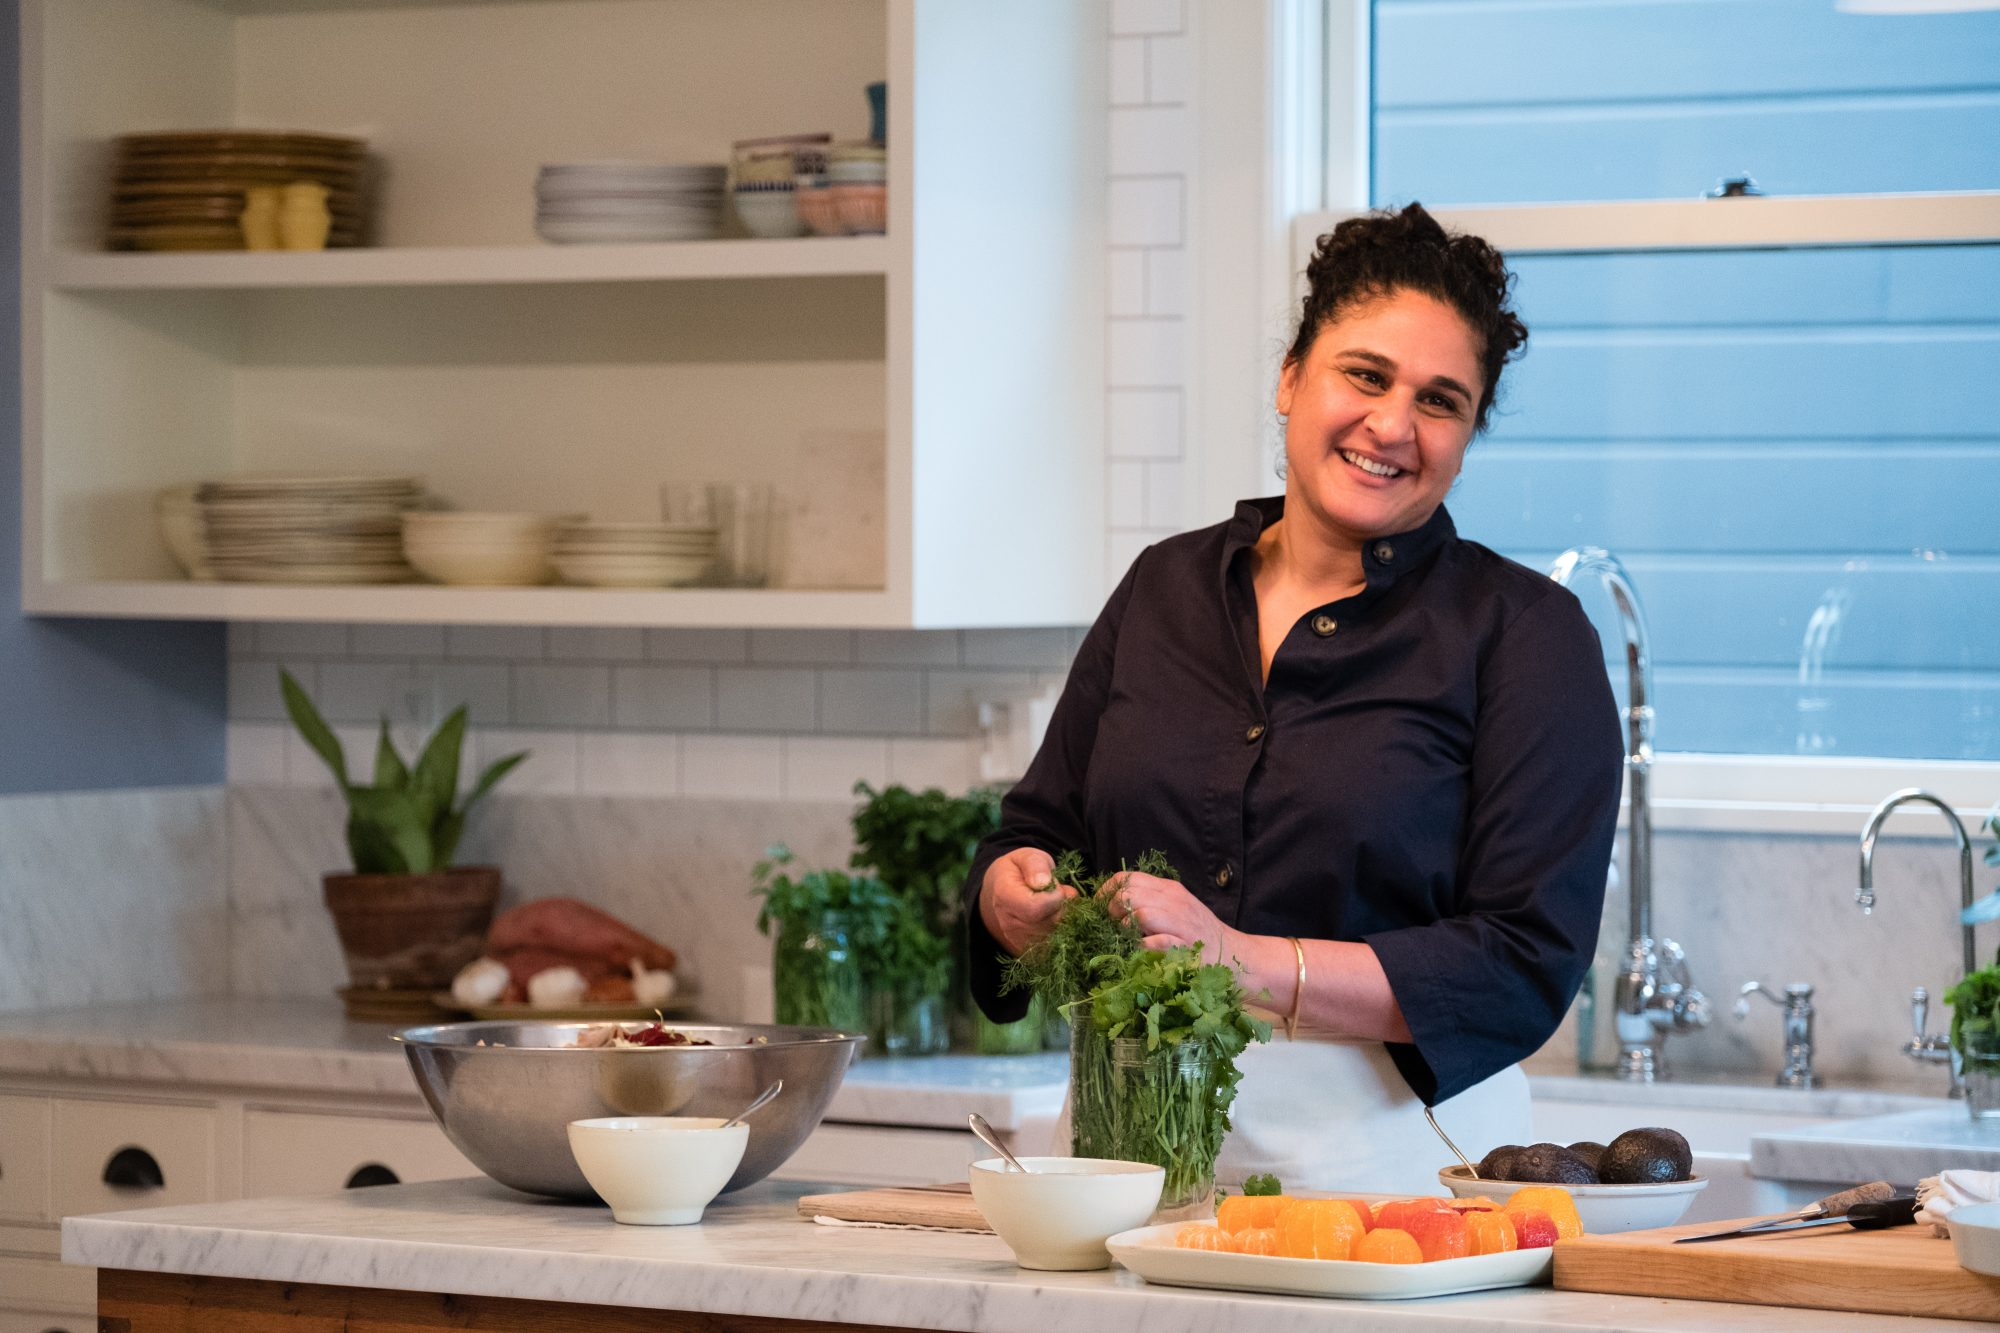 29 Essential Cooking Tips From Samin Nosrat's 'Salt Fat Acid Heat' on Netflix